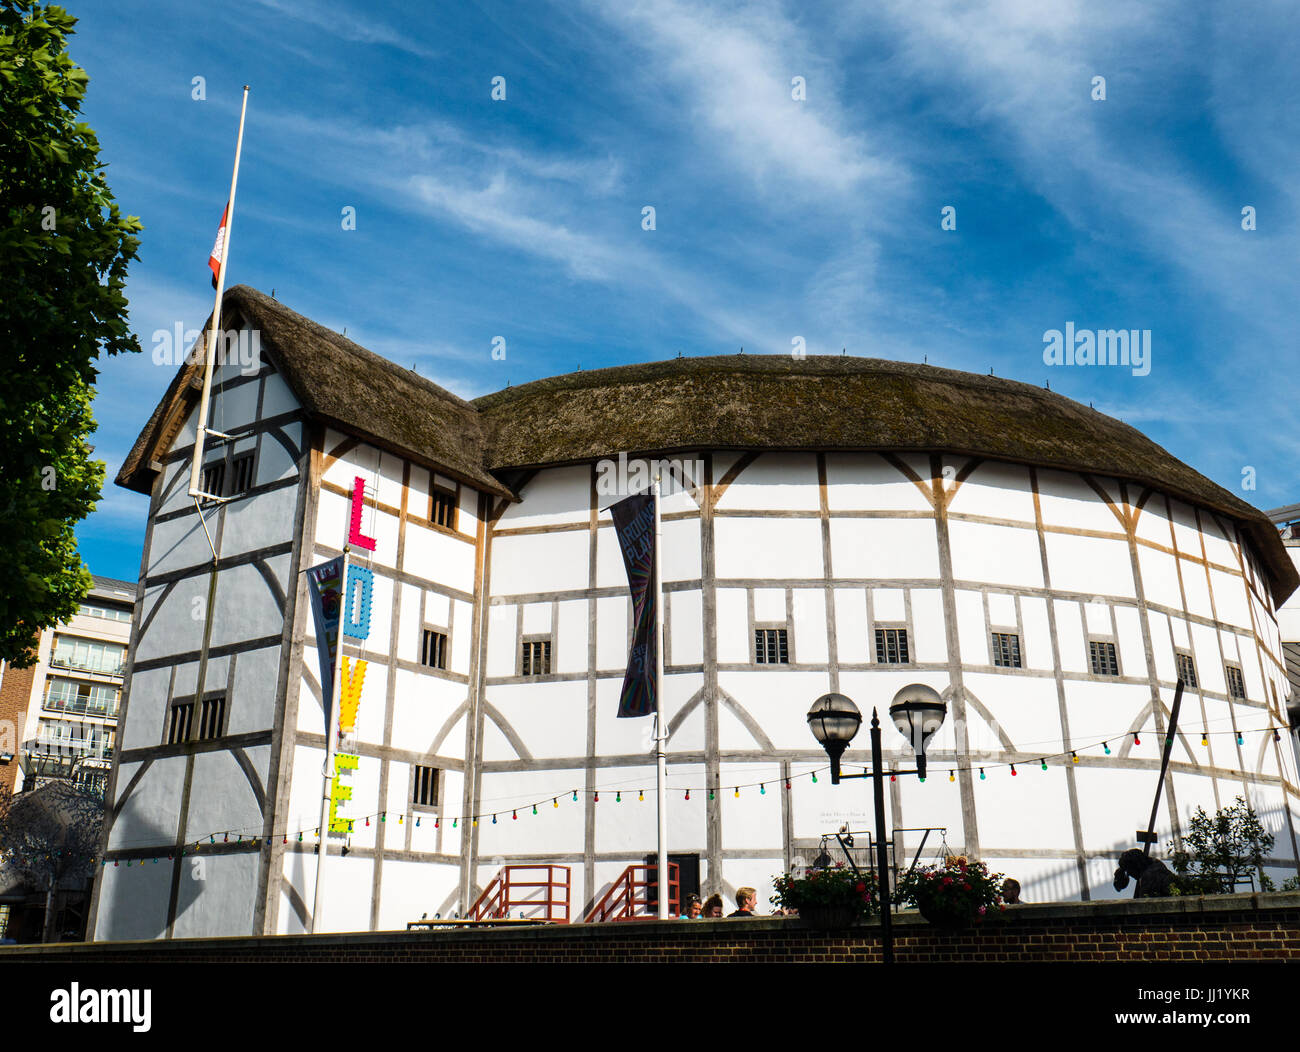 The Globe Theatre, Southbank (of the river thames), London, England - Stock Image